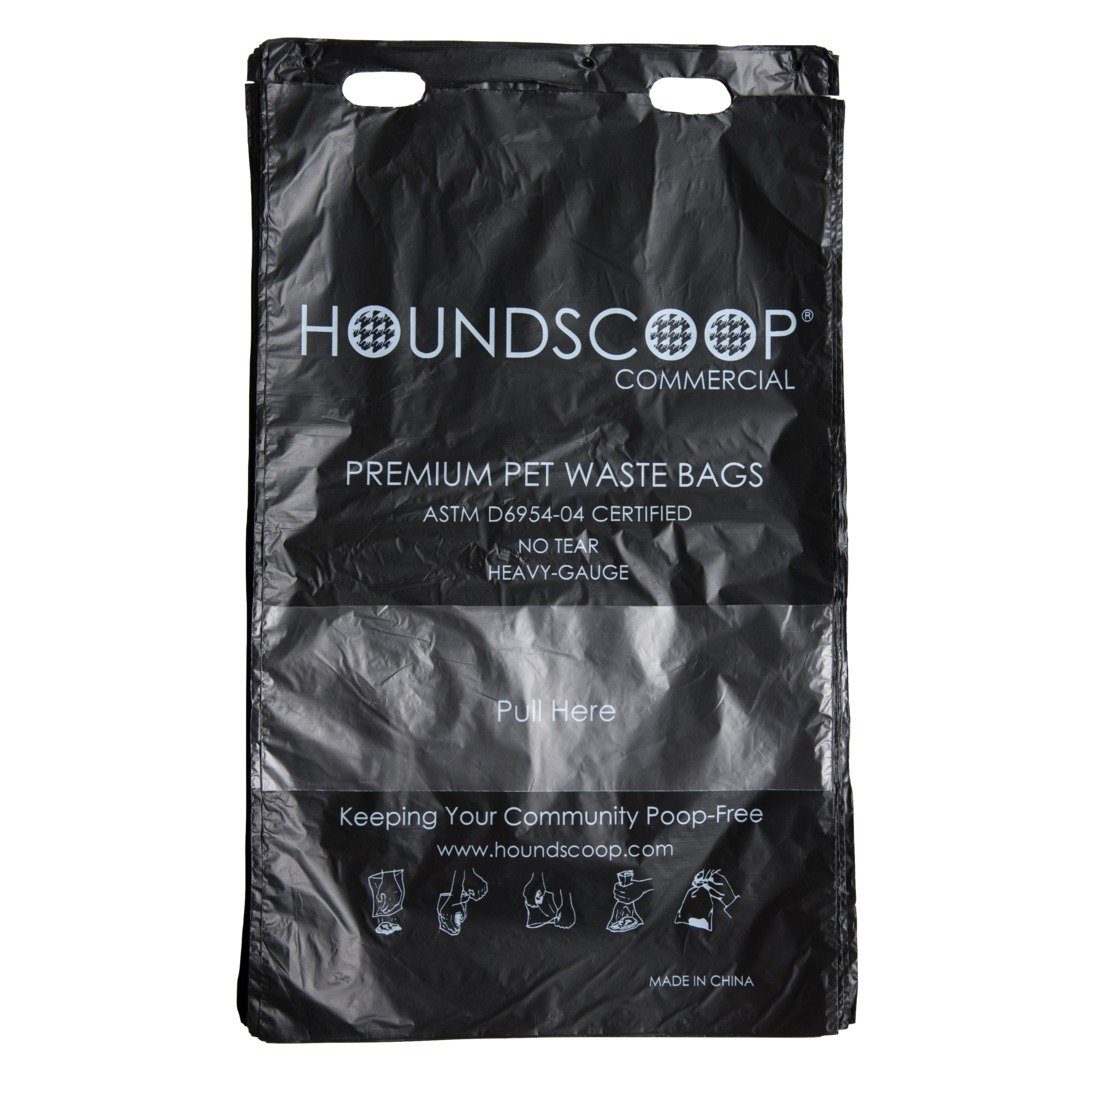 HOUNDSCOOP Case of 3200 header bags (32 packs of 100 bags with Pull-Strap)